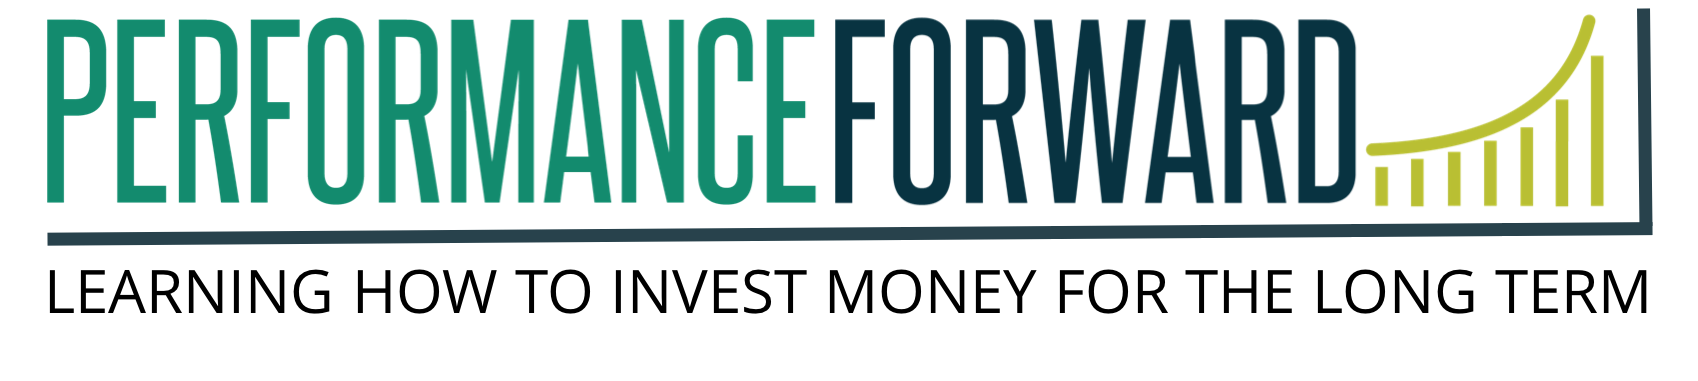 PerformanceForward logo